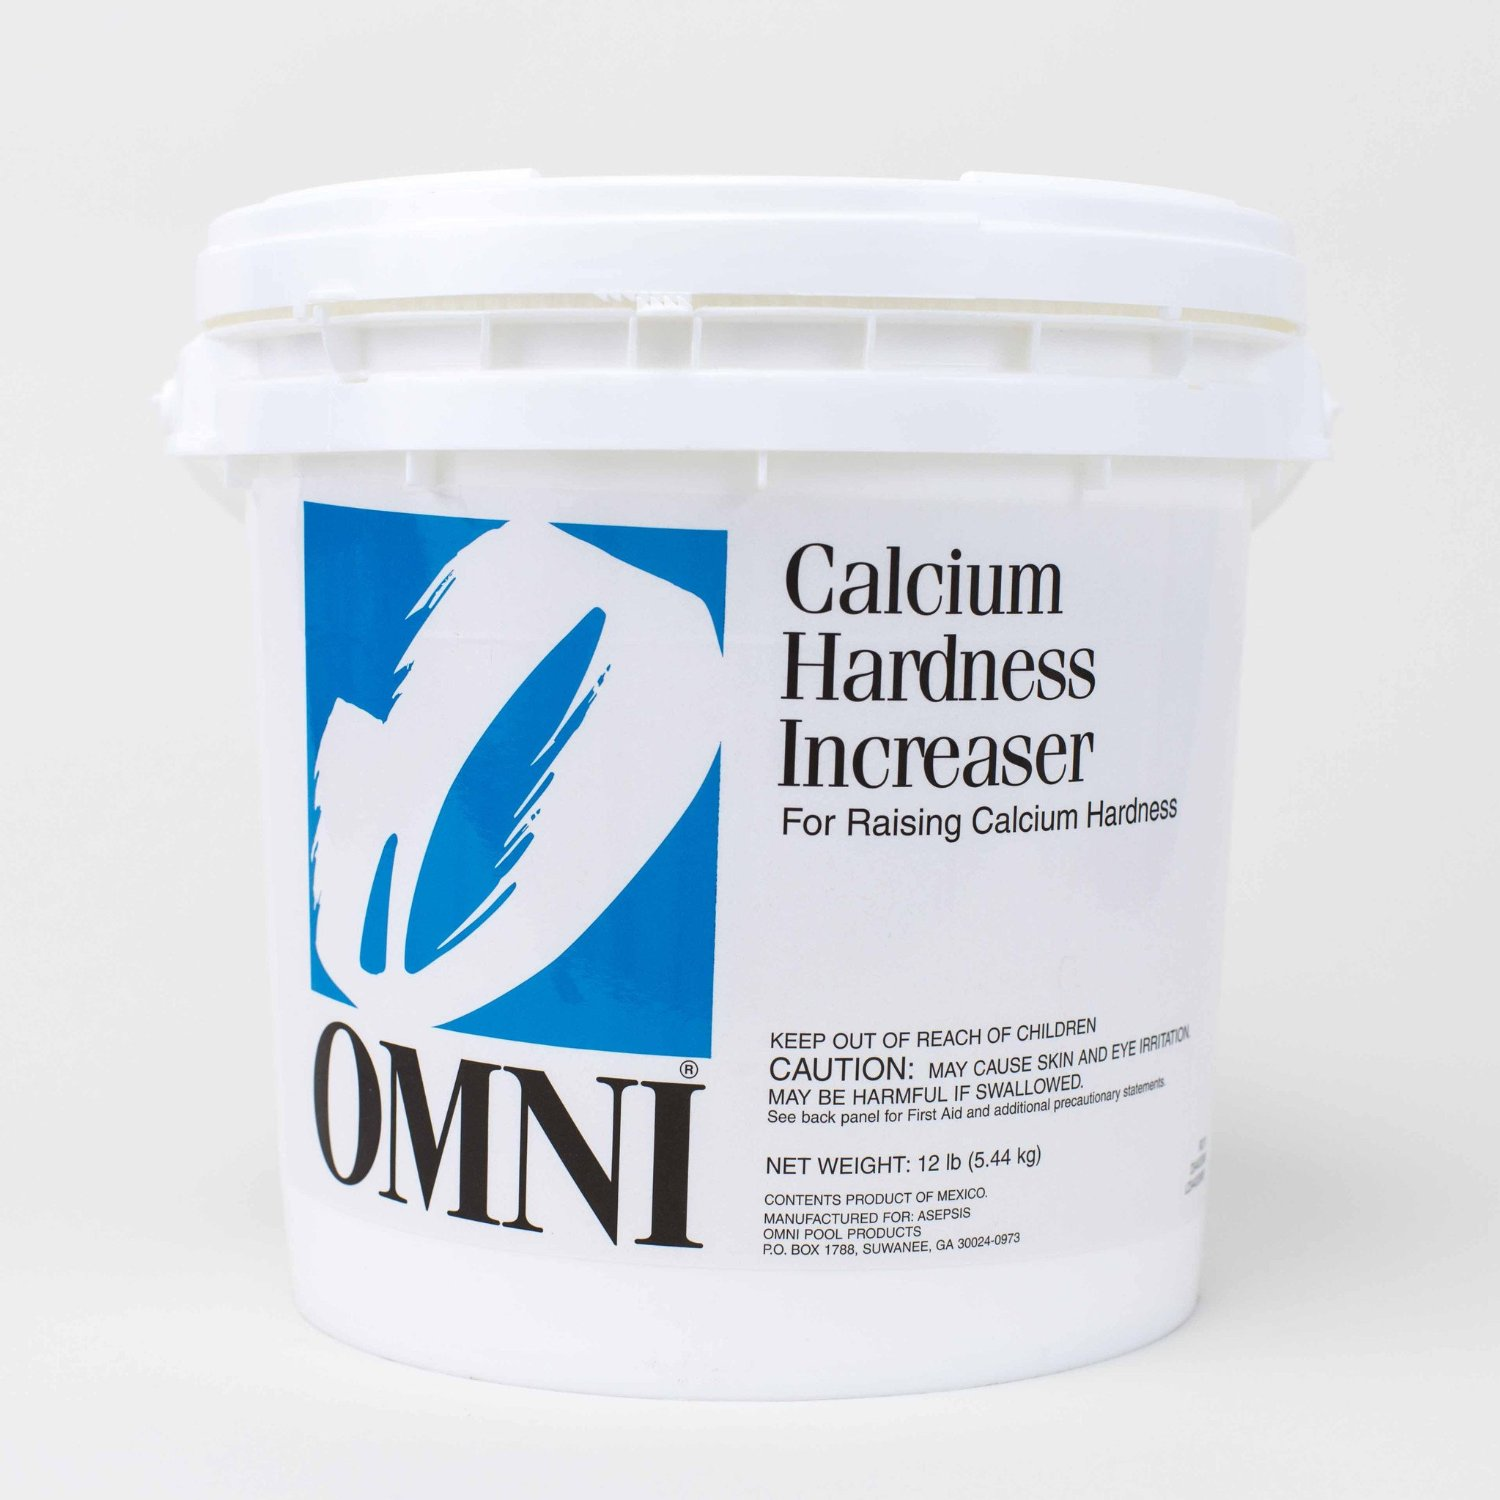 Calcium Hardness Increaser